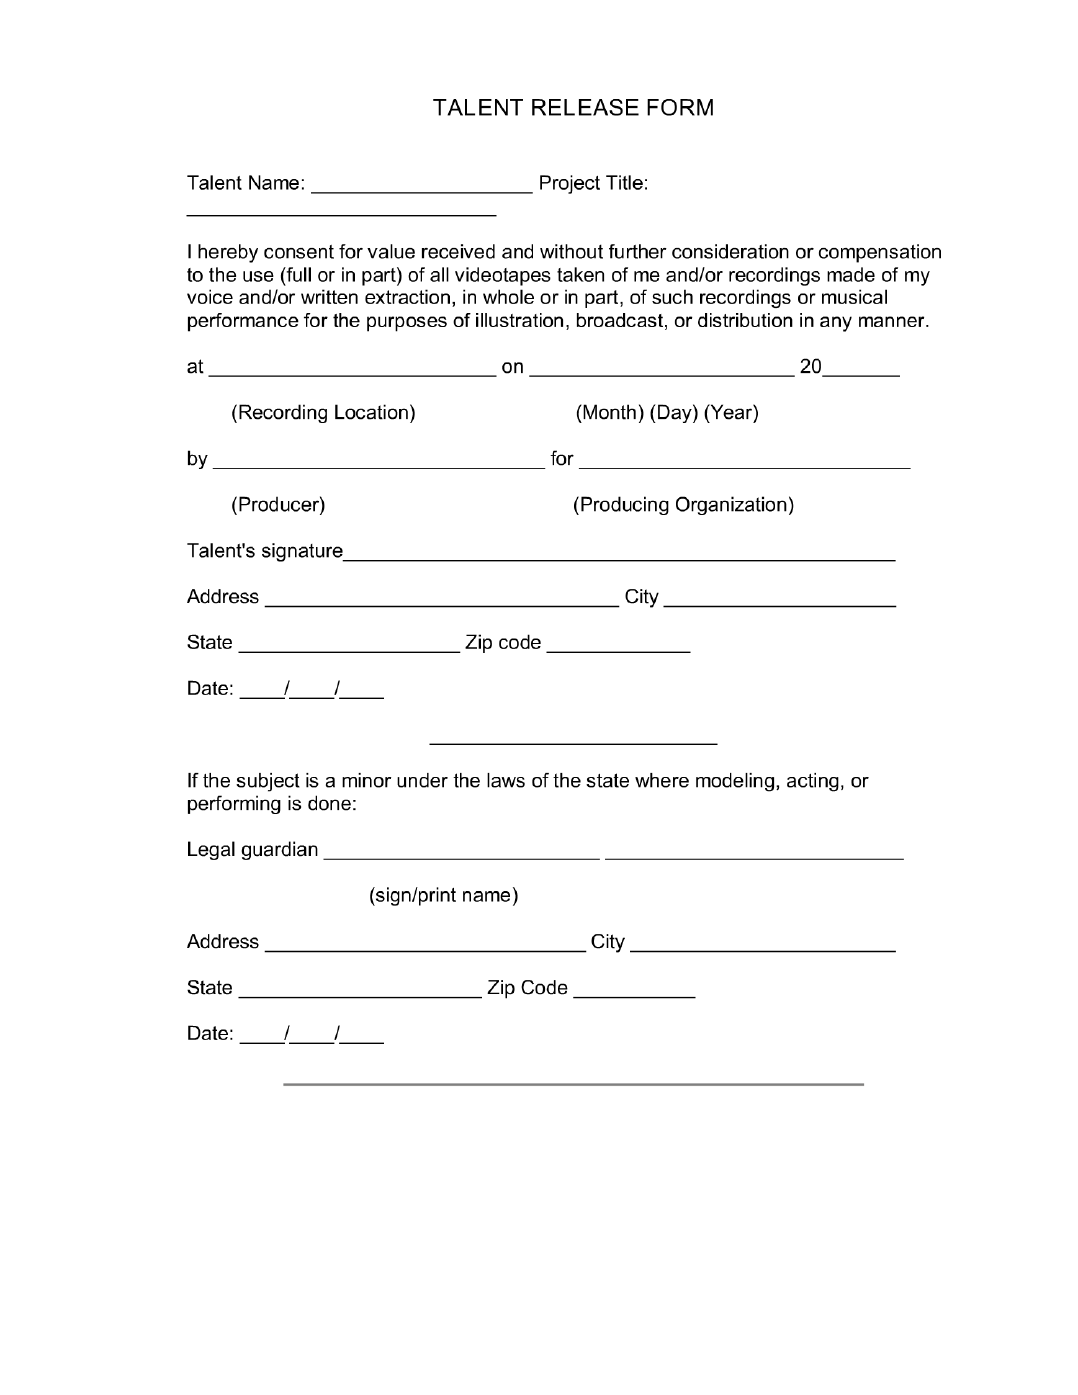 Talent Release Form 3